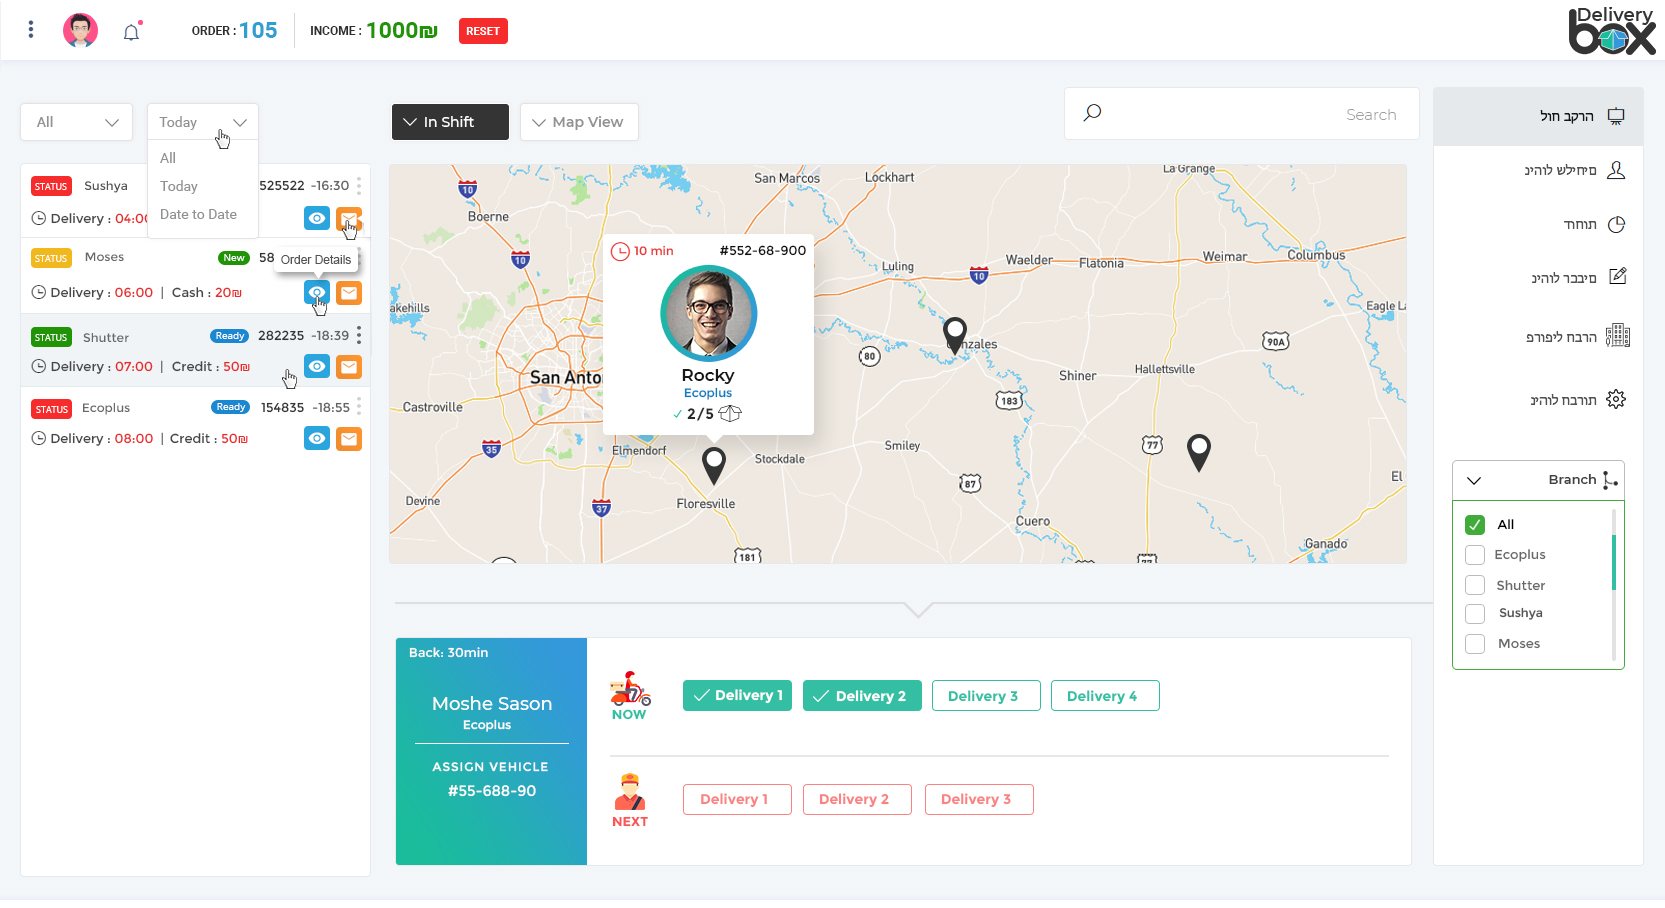 Manager-dashboard-map-view